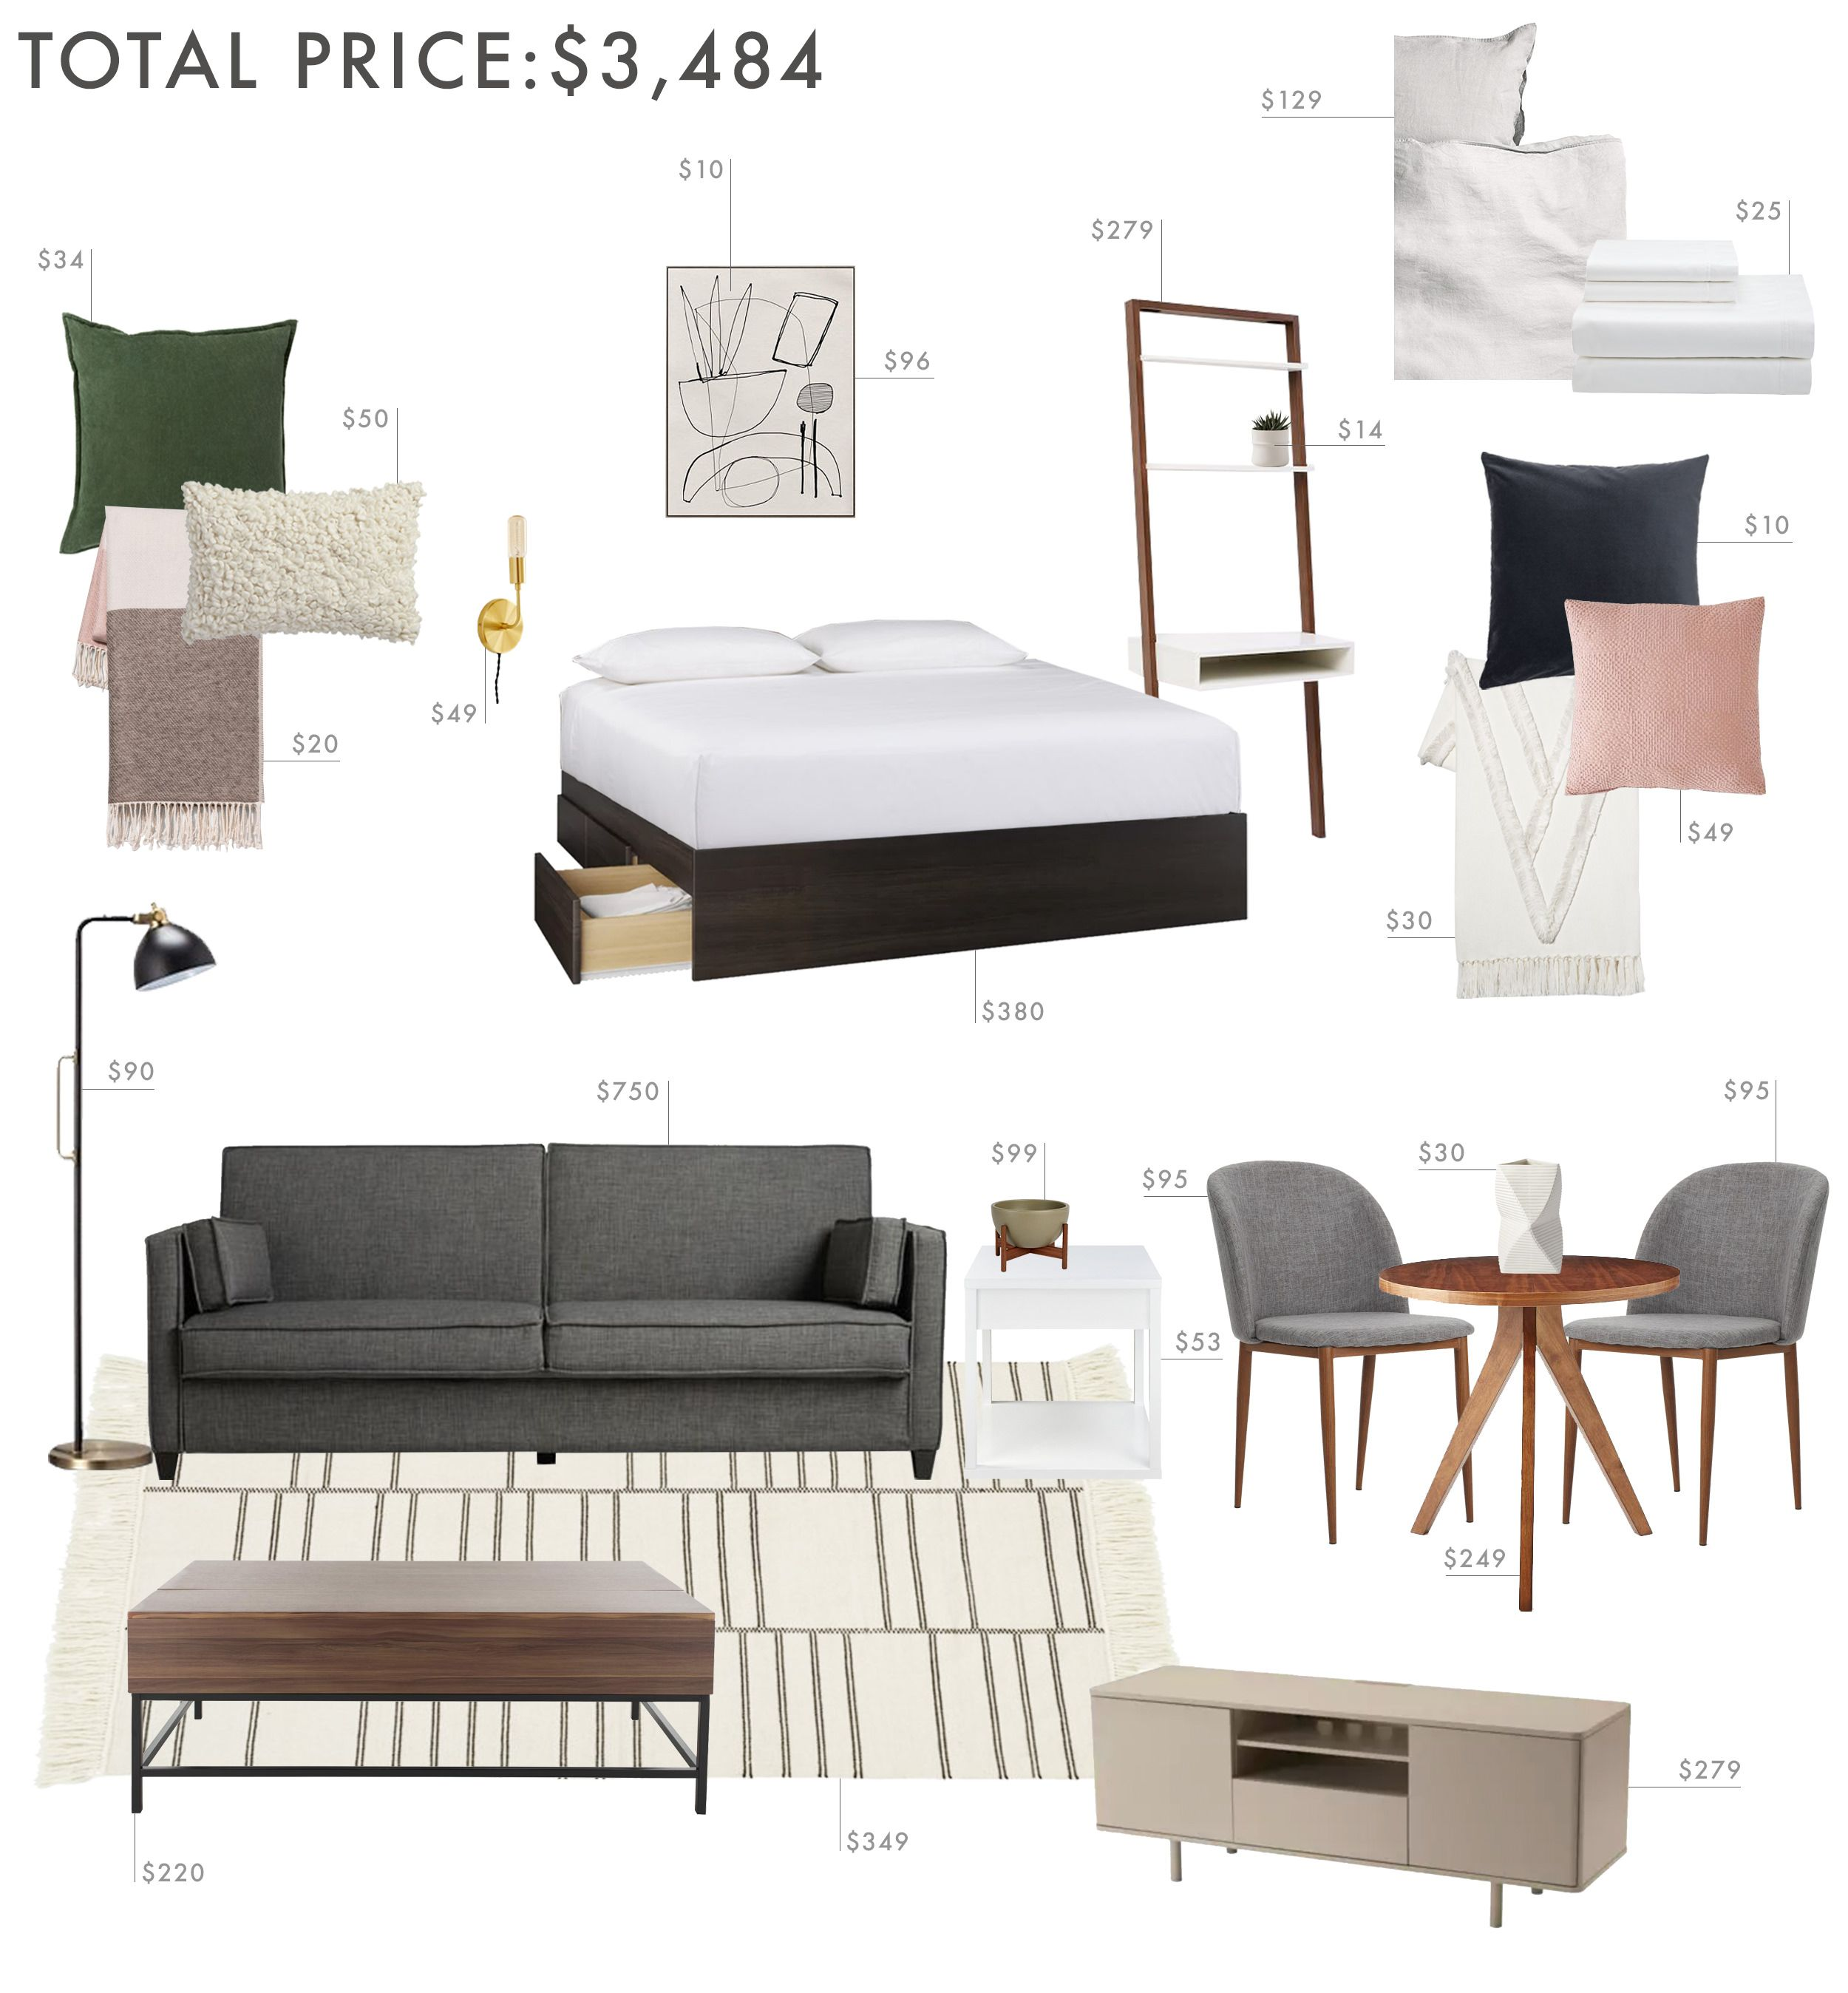 3 Budgets 3 Designs How To Decorate A Studio Apartment Apartment Decor Studio Apartment Furniture Apartment Design Inspiration